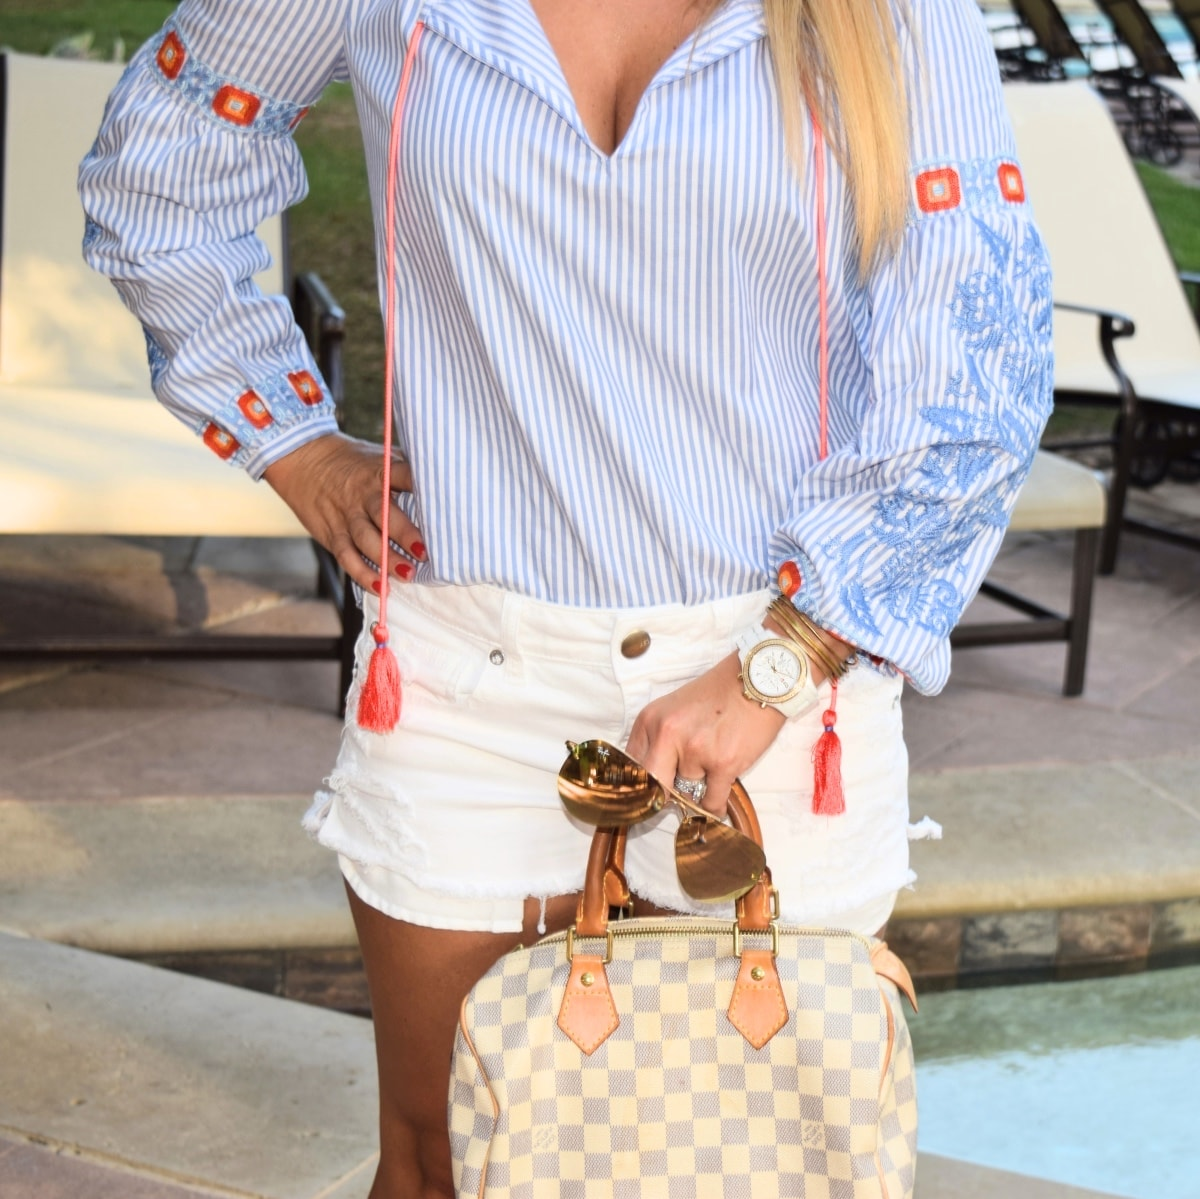 Tory Burch Striped Tunic - The perfect summer tunic to wear with cut off shorts